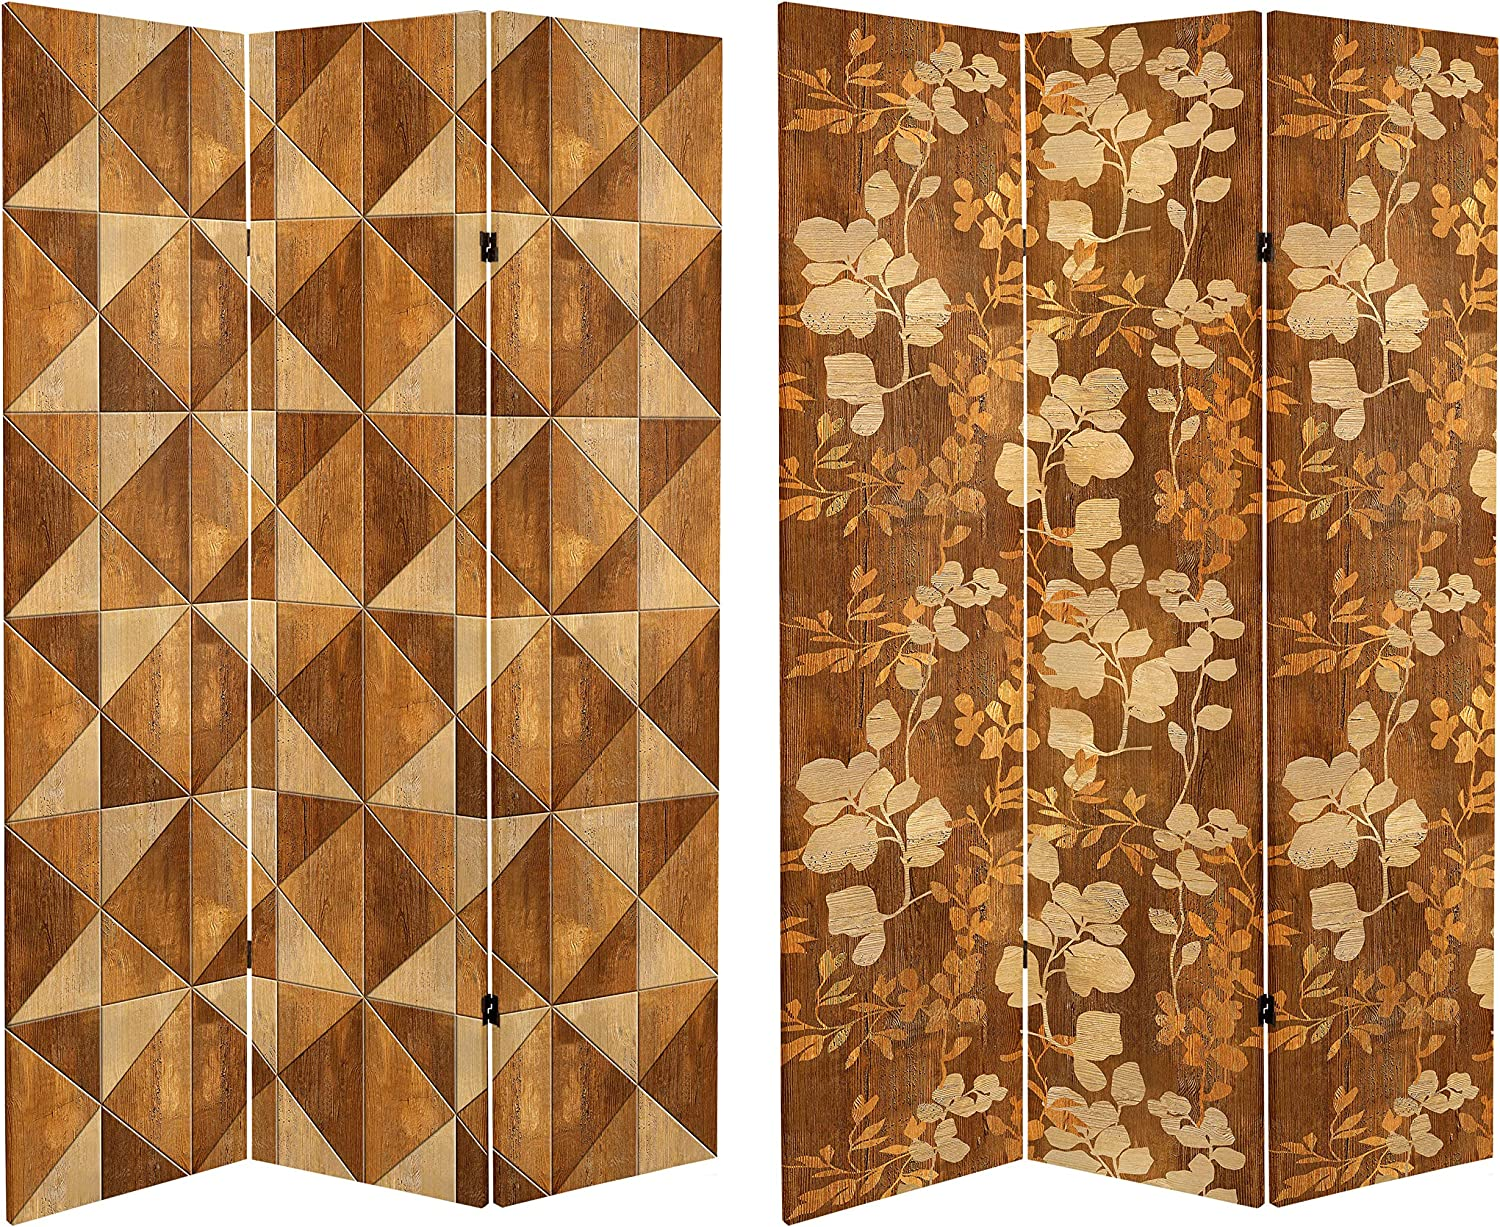 ORIENTAL Furniture 6 ft. Tall Double Sided Wood Inlay Pattern Canvas Room Divider, Brown